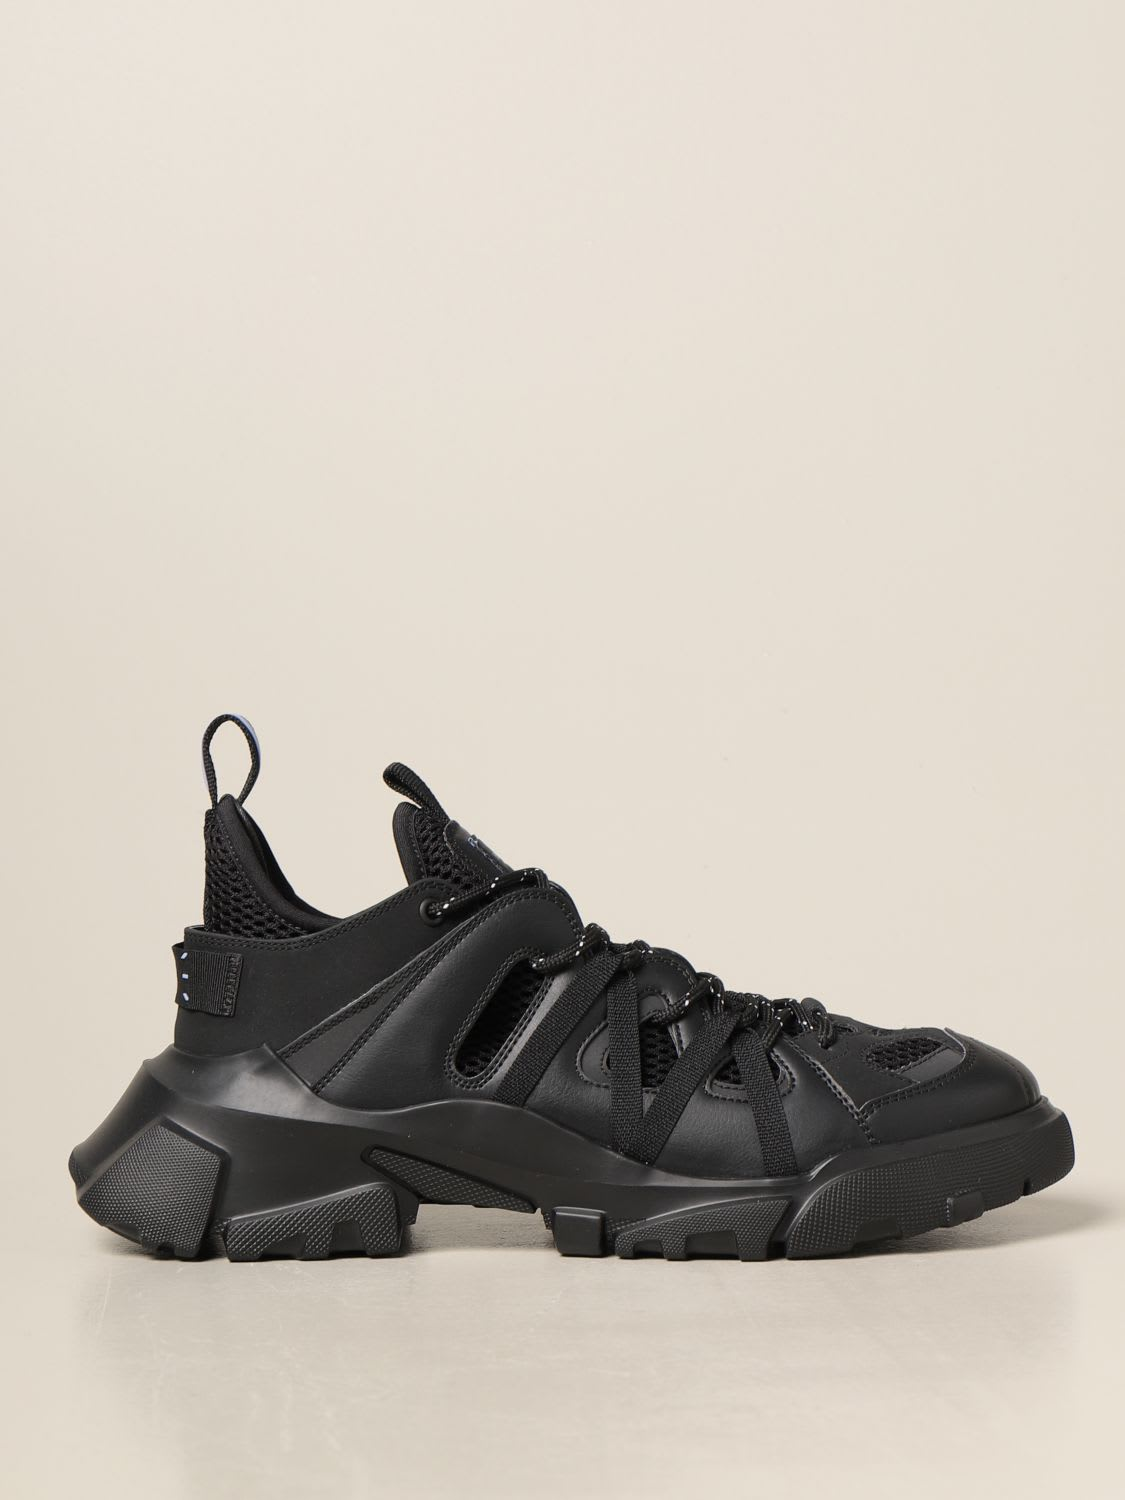 Mcq Sneakers Ic-0 Orbyt 2.0 Mcq Sneakers In Leather And Micro Mesh